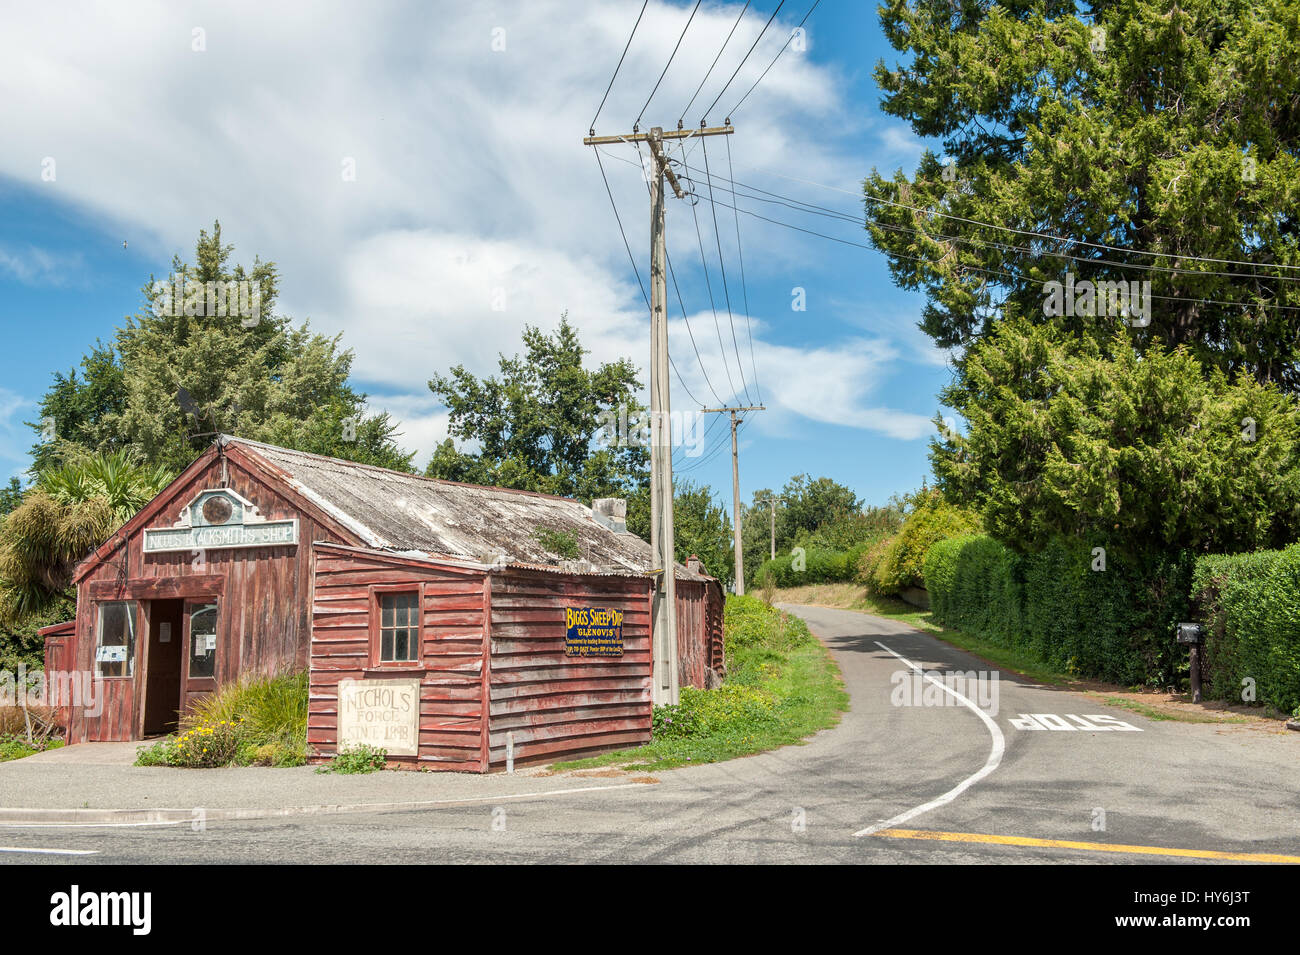 Nicol's Blacksmith shop dating back to 1898 is an authentic historic blacksmith shop in Duntroon, New Zealand. - Stock Image